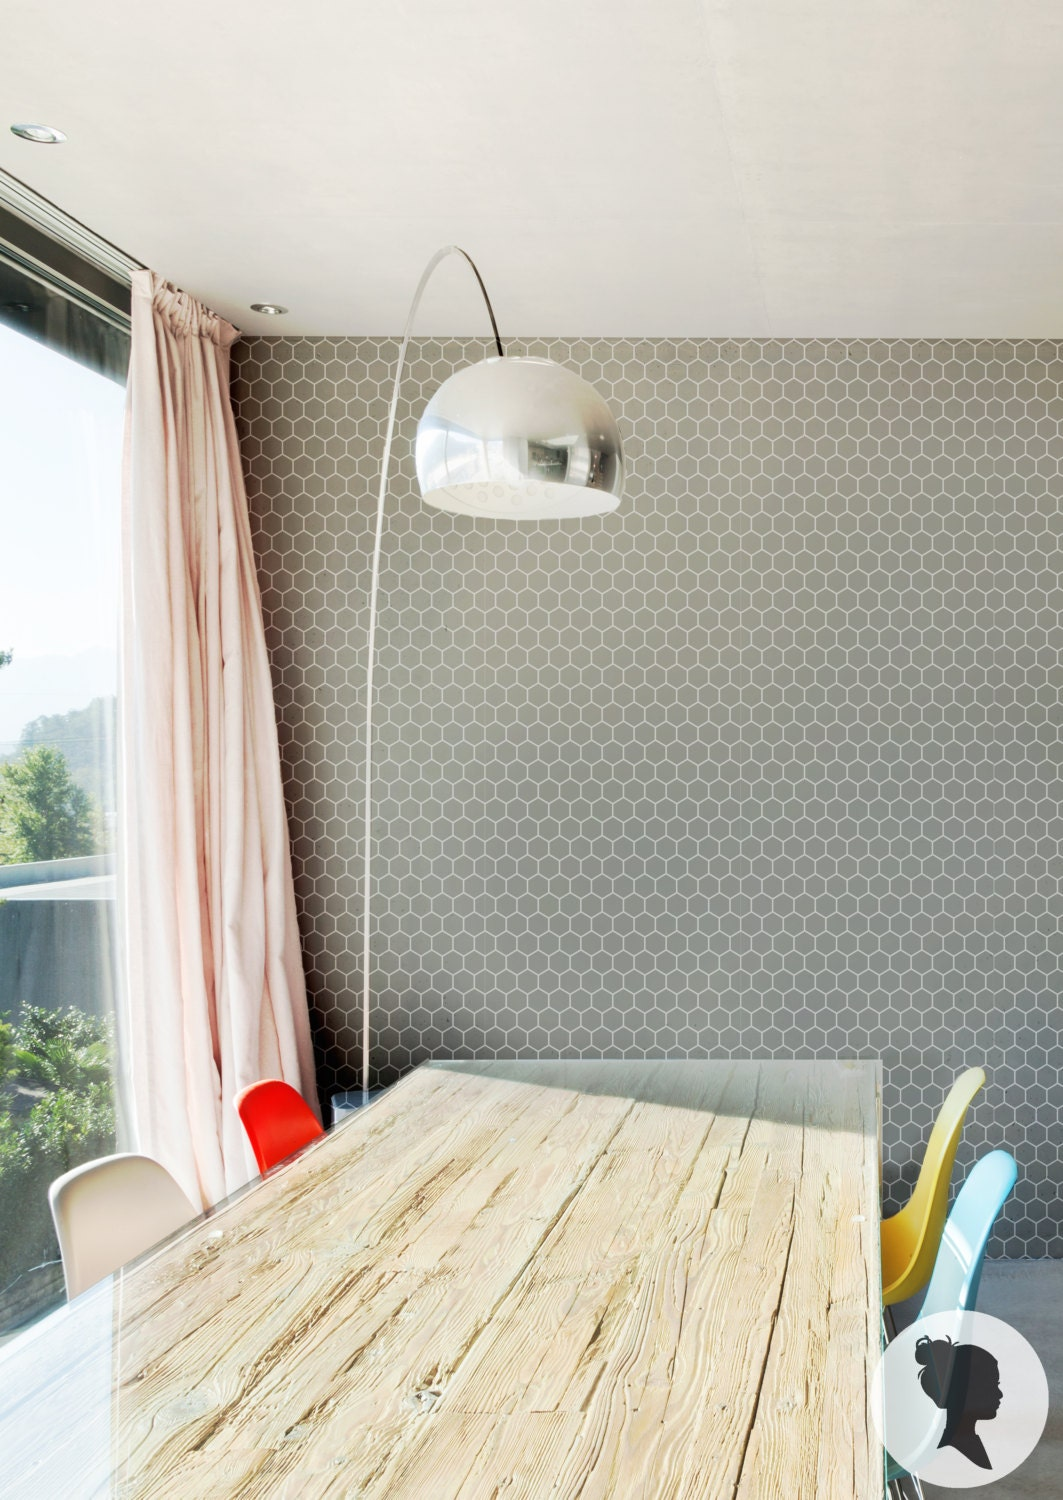 honeycomb removable wallpaper hexagon pattern peel and stick. Black Bedroom Furniture Sets. Home Design Ideas